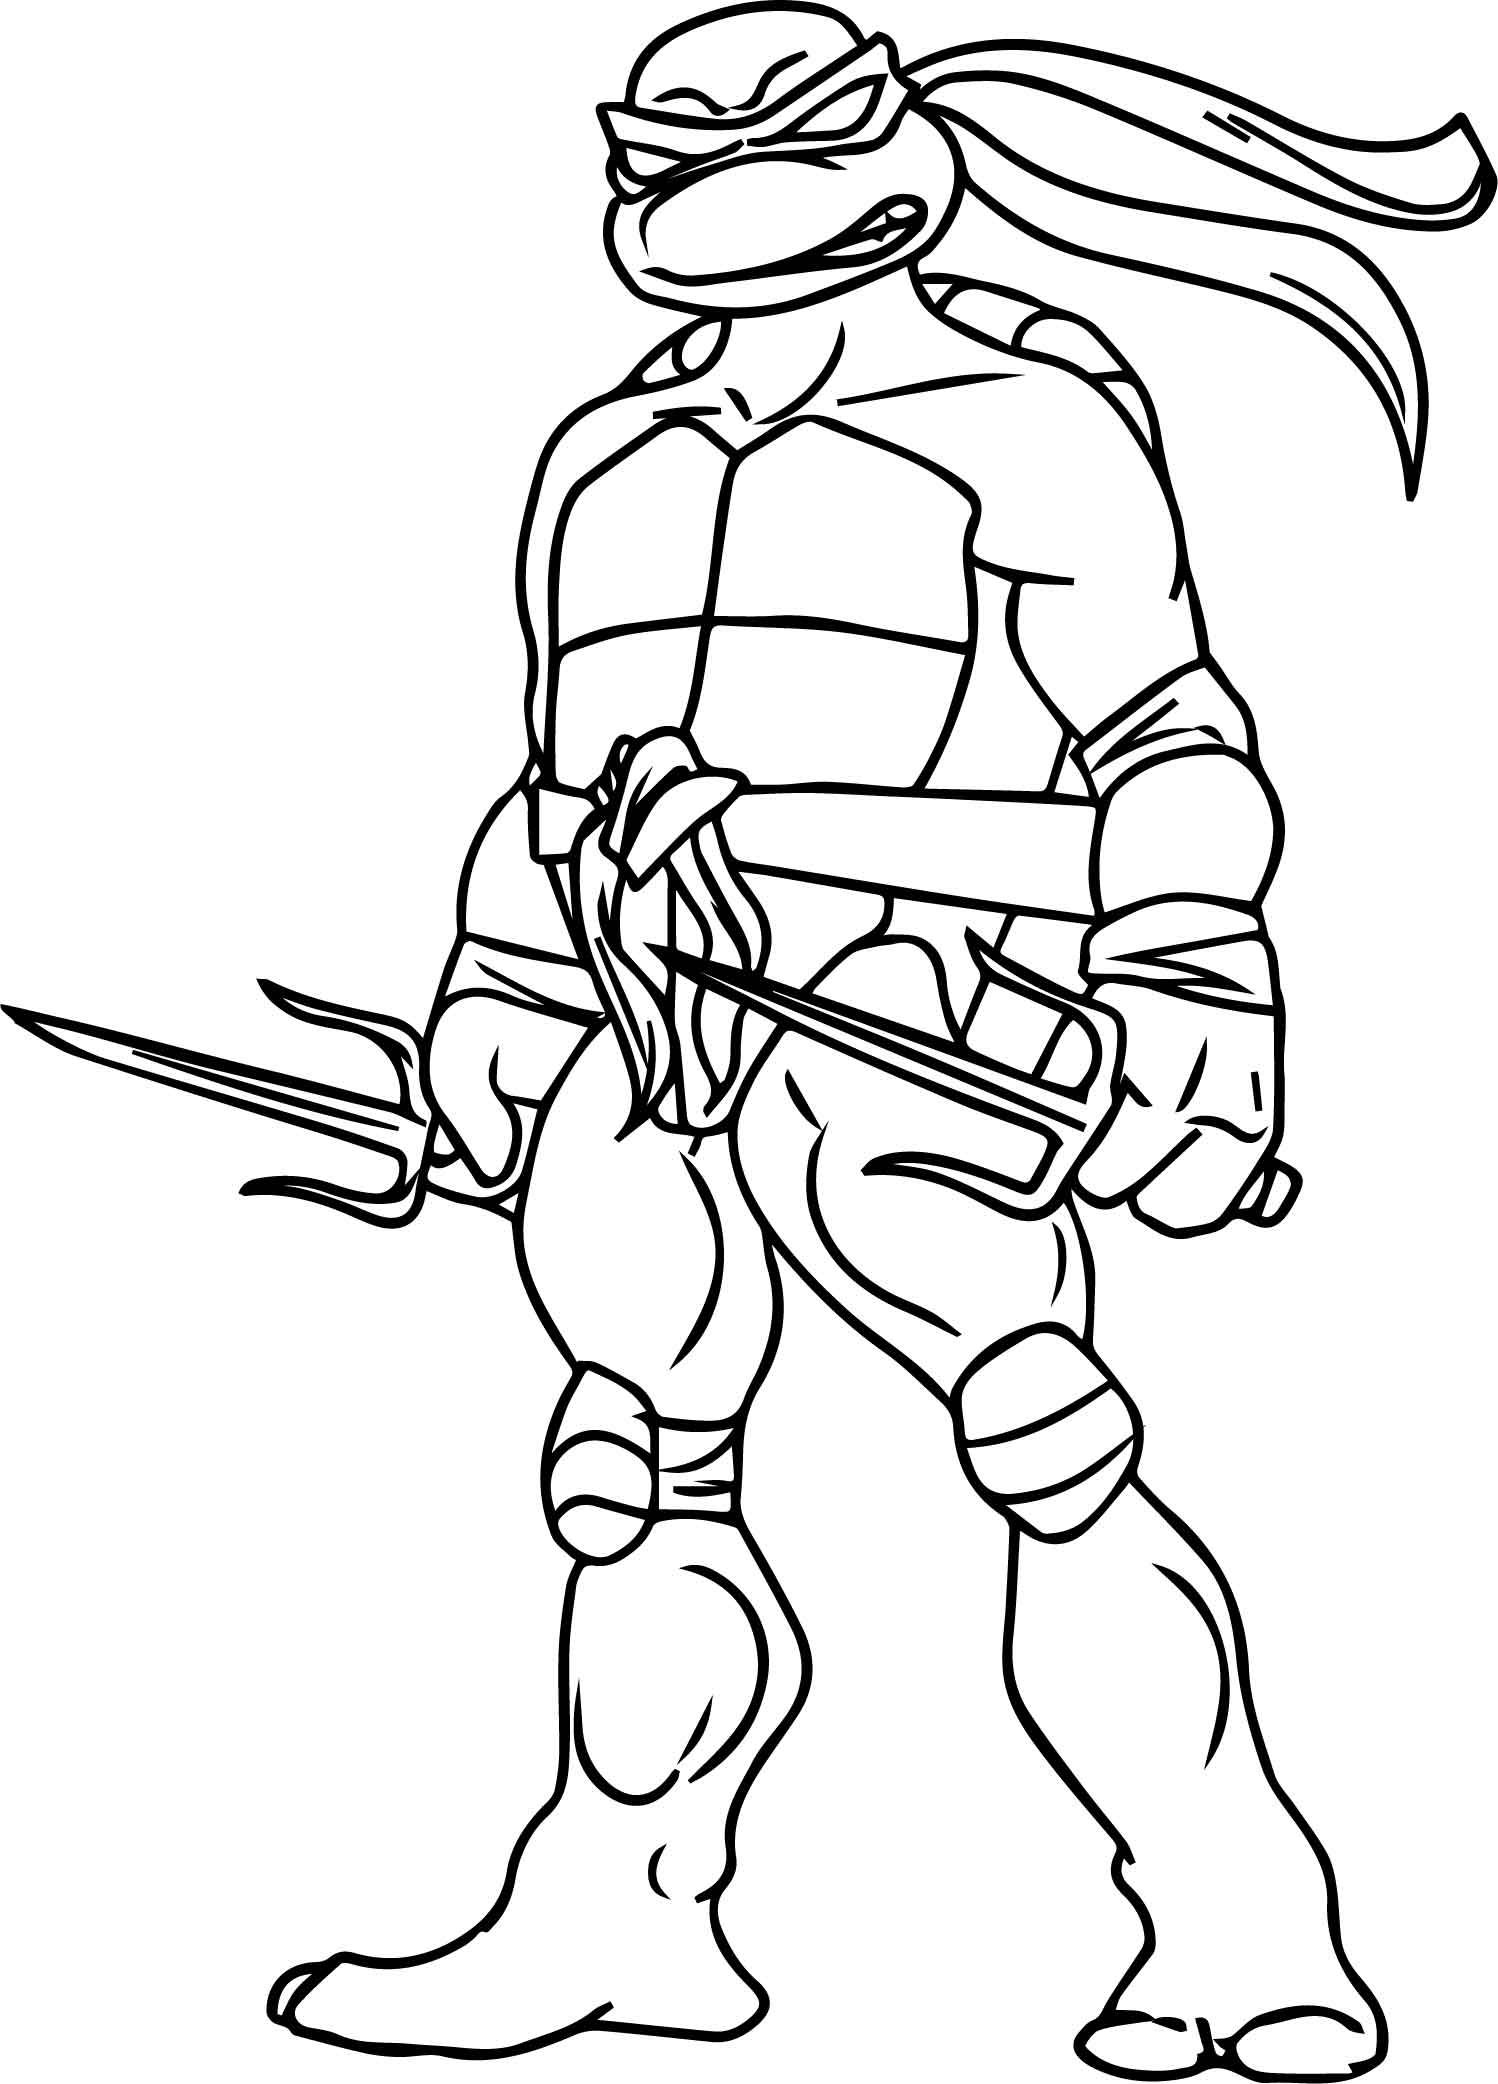 Cool The Teenage Mutant Ninja Turtles Blade Coloring Page Turtle Coloring Pages Ninja Turtle Coloring Pages Superhero Coloring Pages